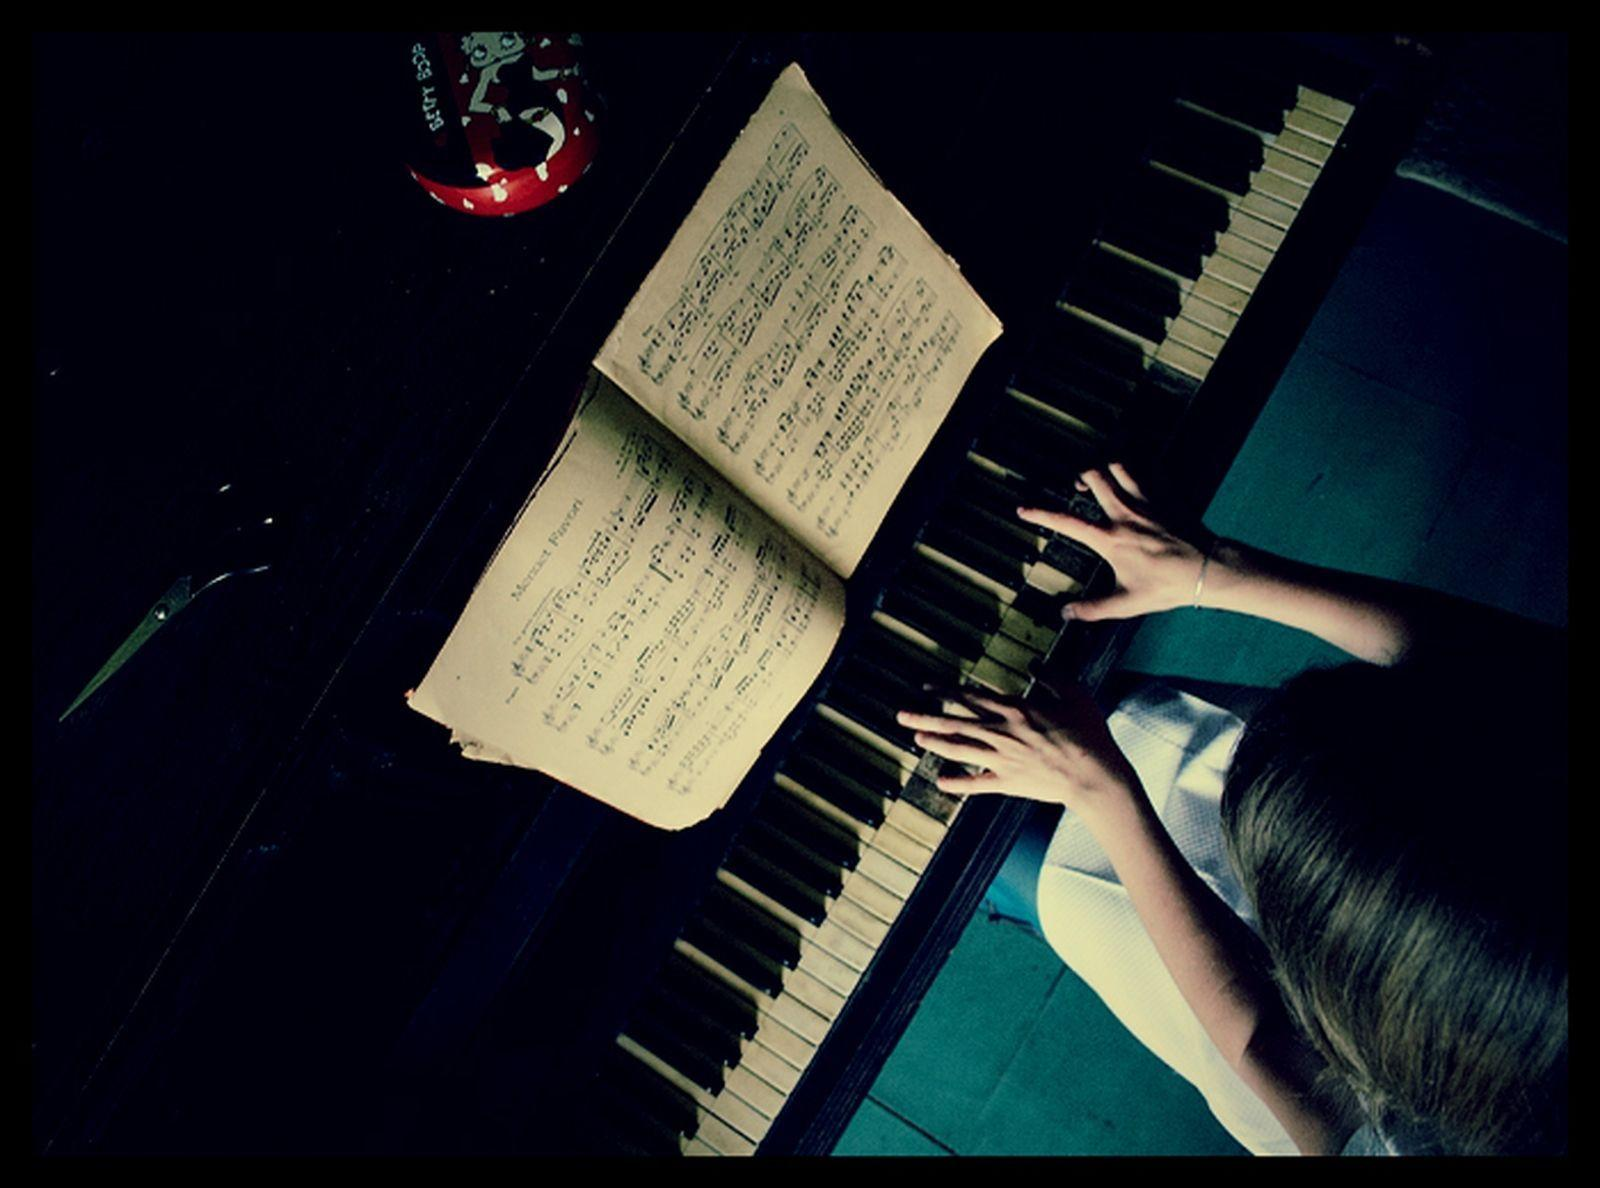 Piano Wallpapers - Download Free Misc Wallpapers, Photos, Pictures ...